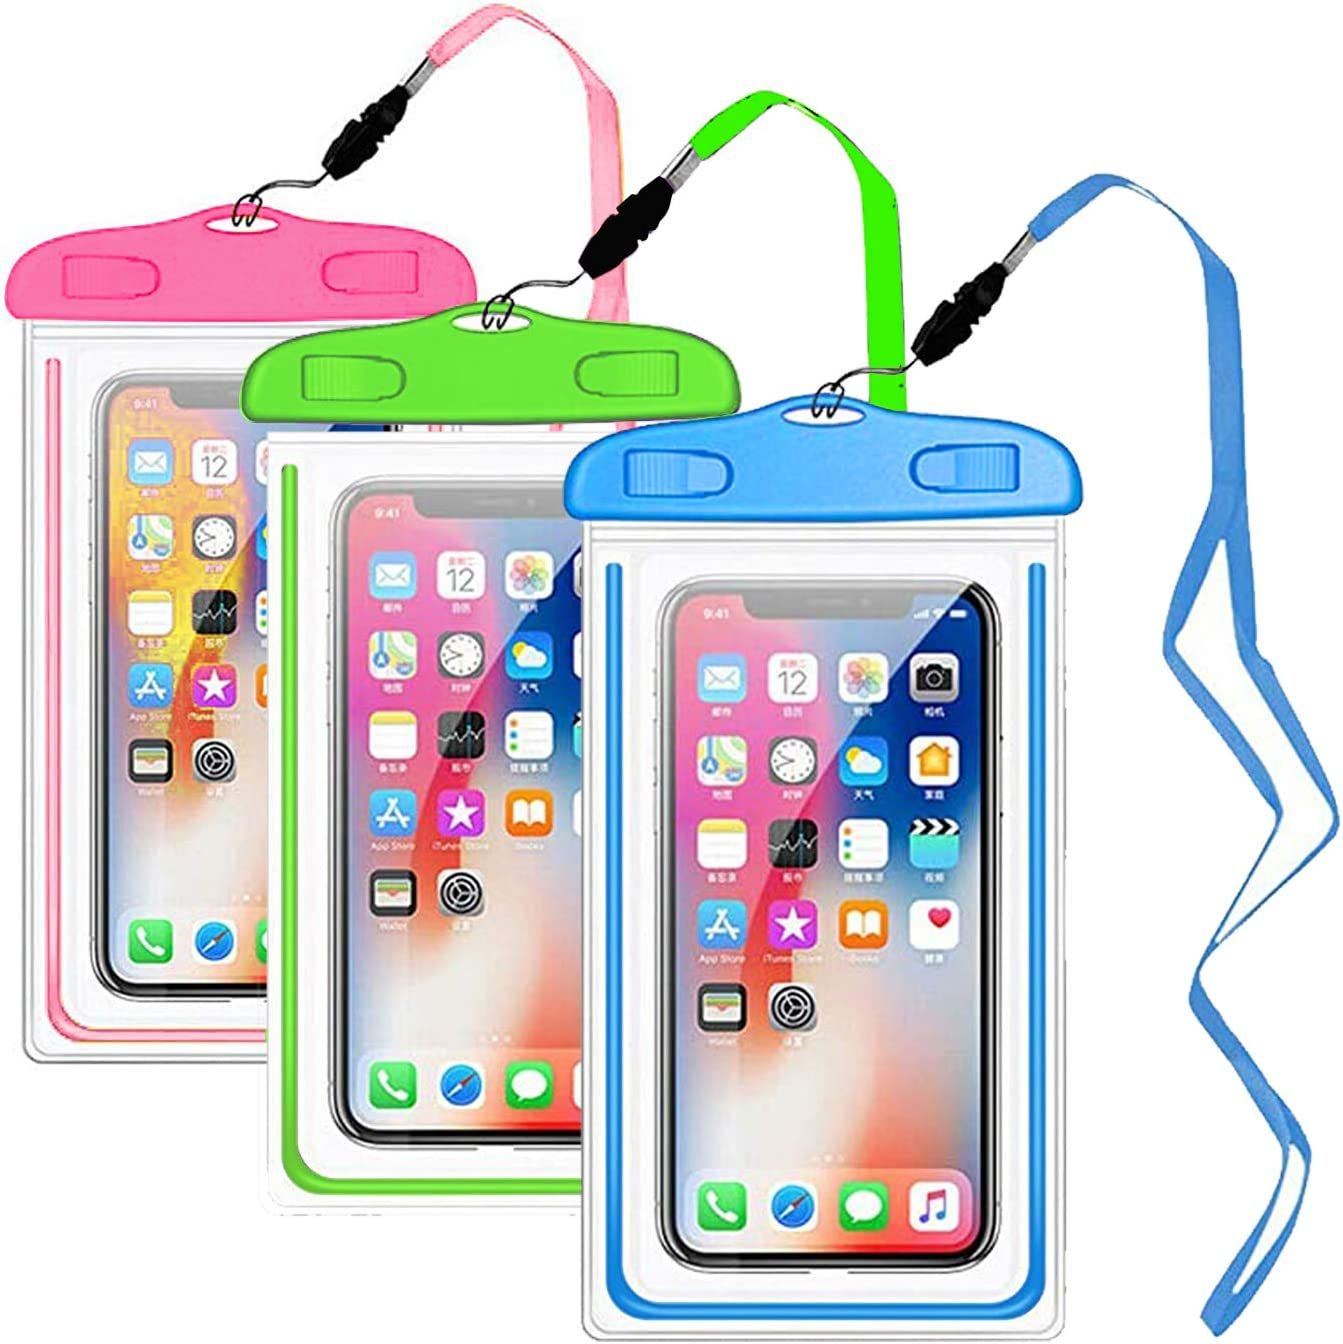 YOHOTA 3-Piece Waterproof Phone Pouch for Smart Phones Below 6.5 inches (Pink,Grenn,Sky Blue)